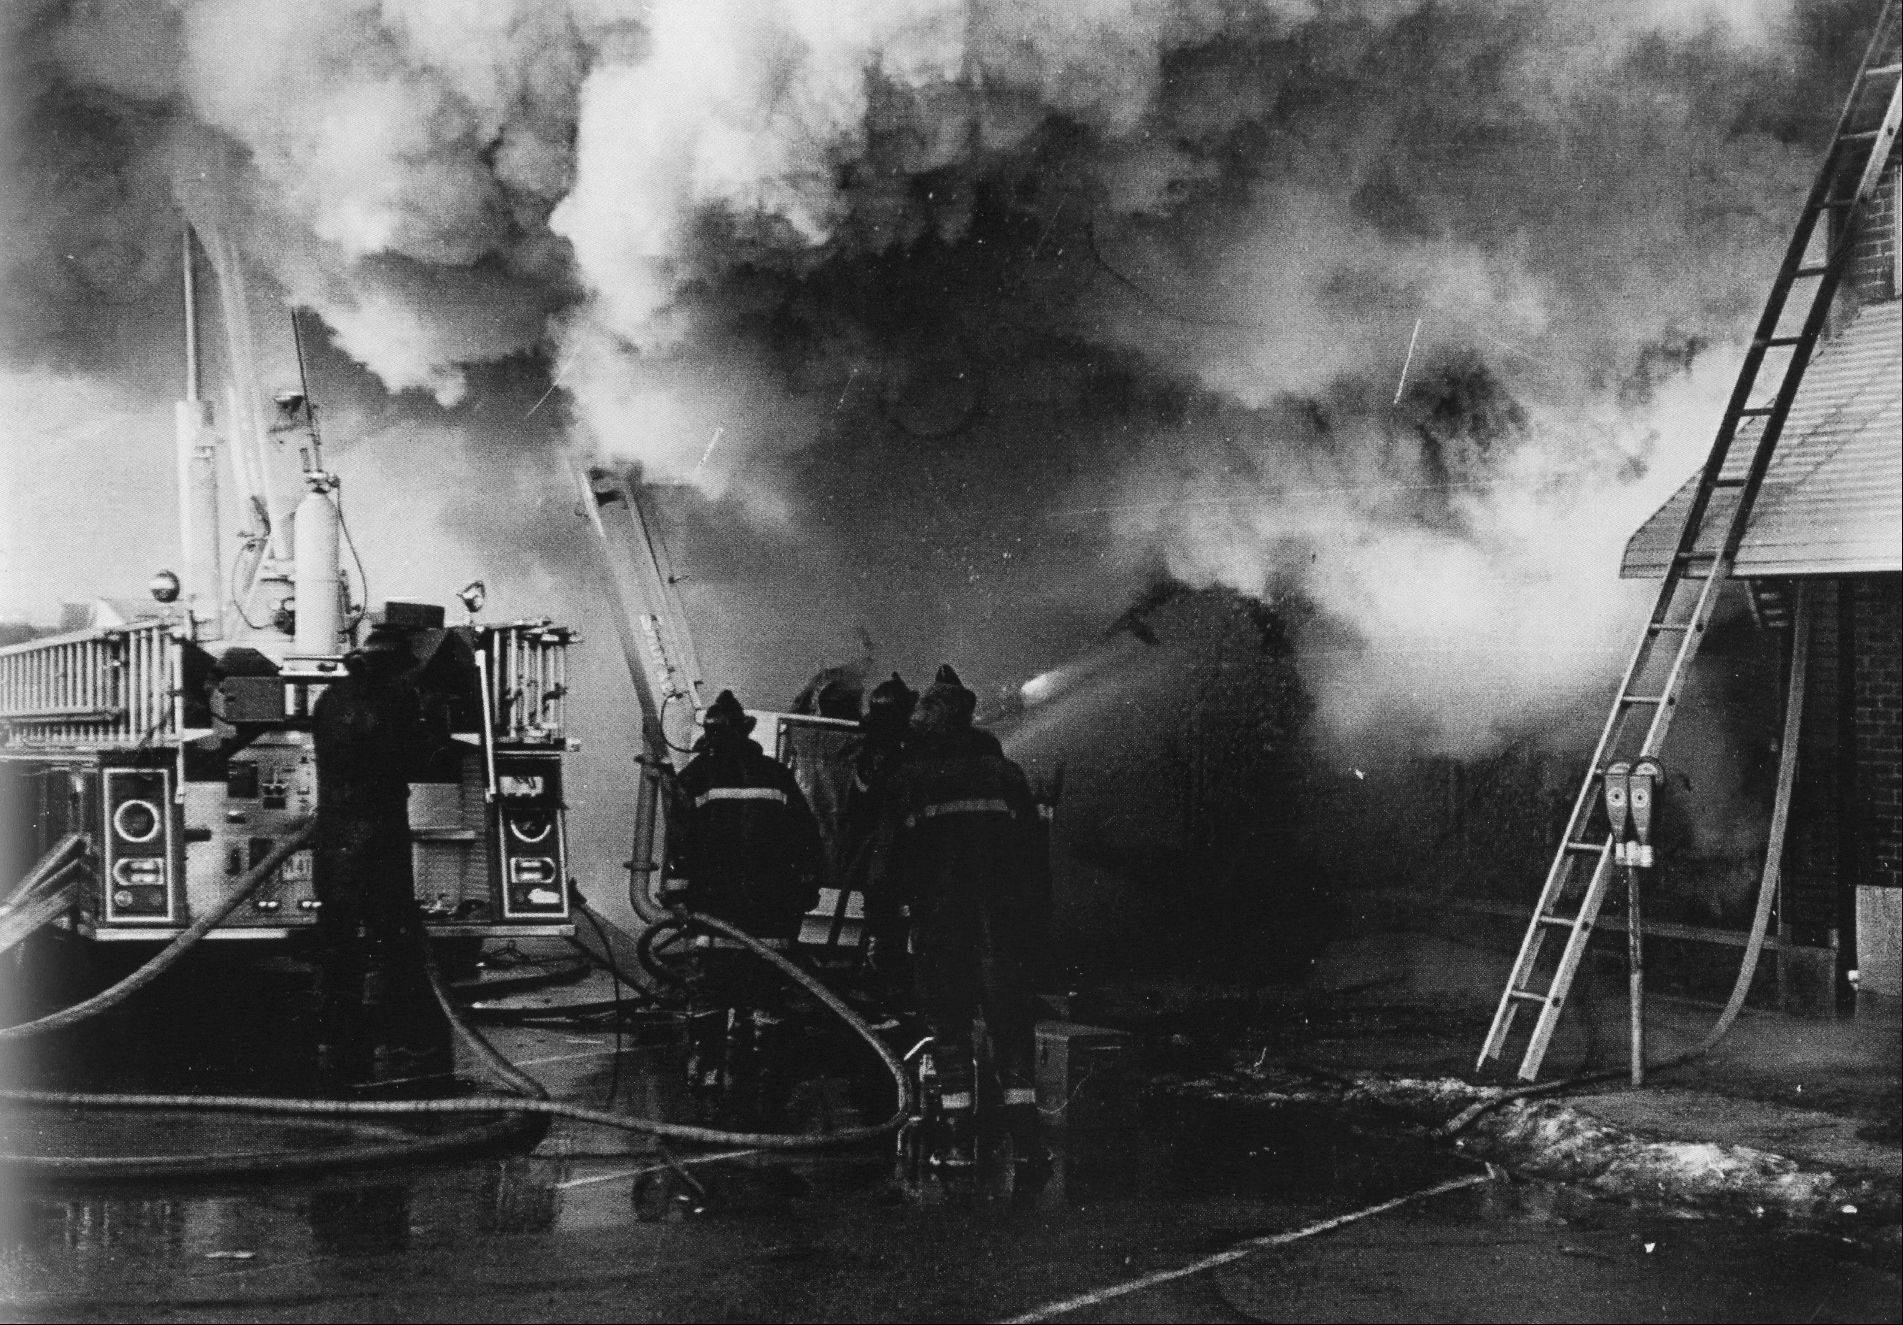 Palatine firefighters' 1973 deaths still felt today